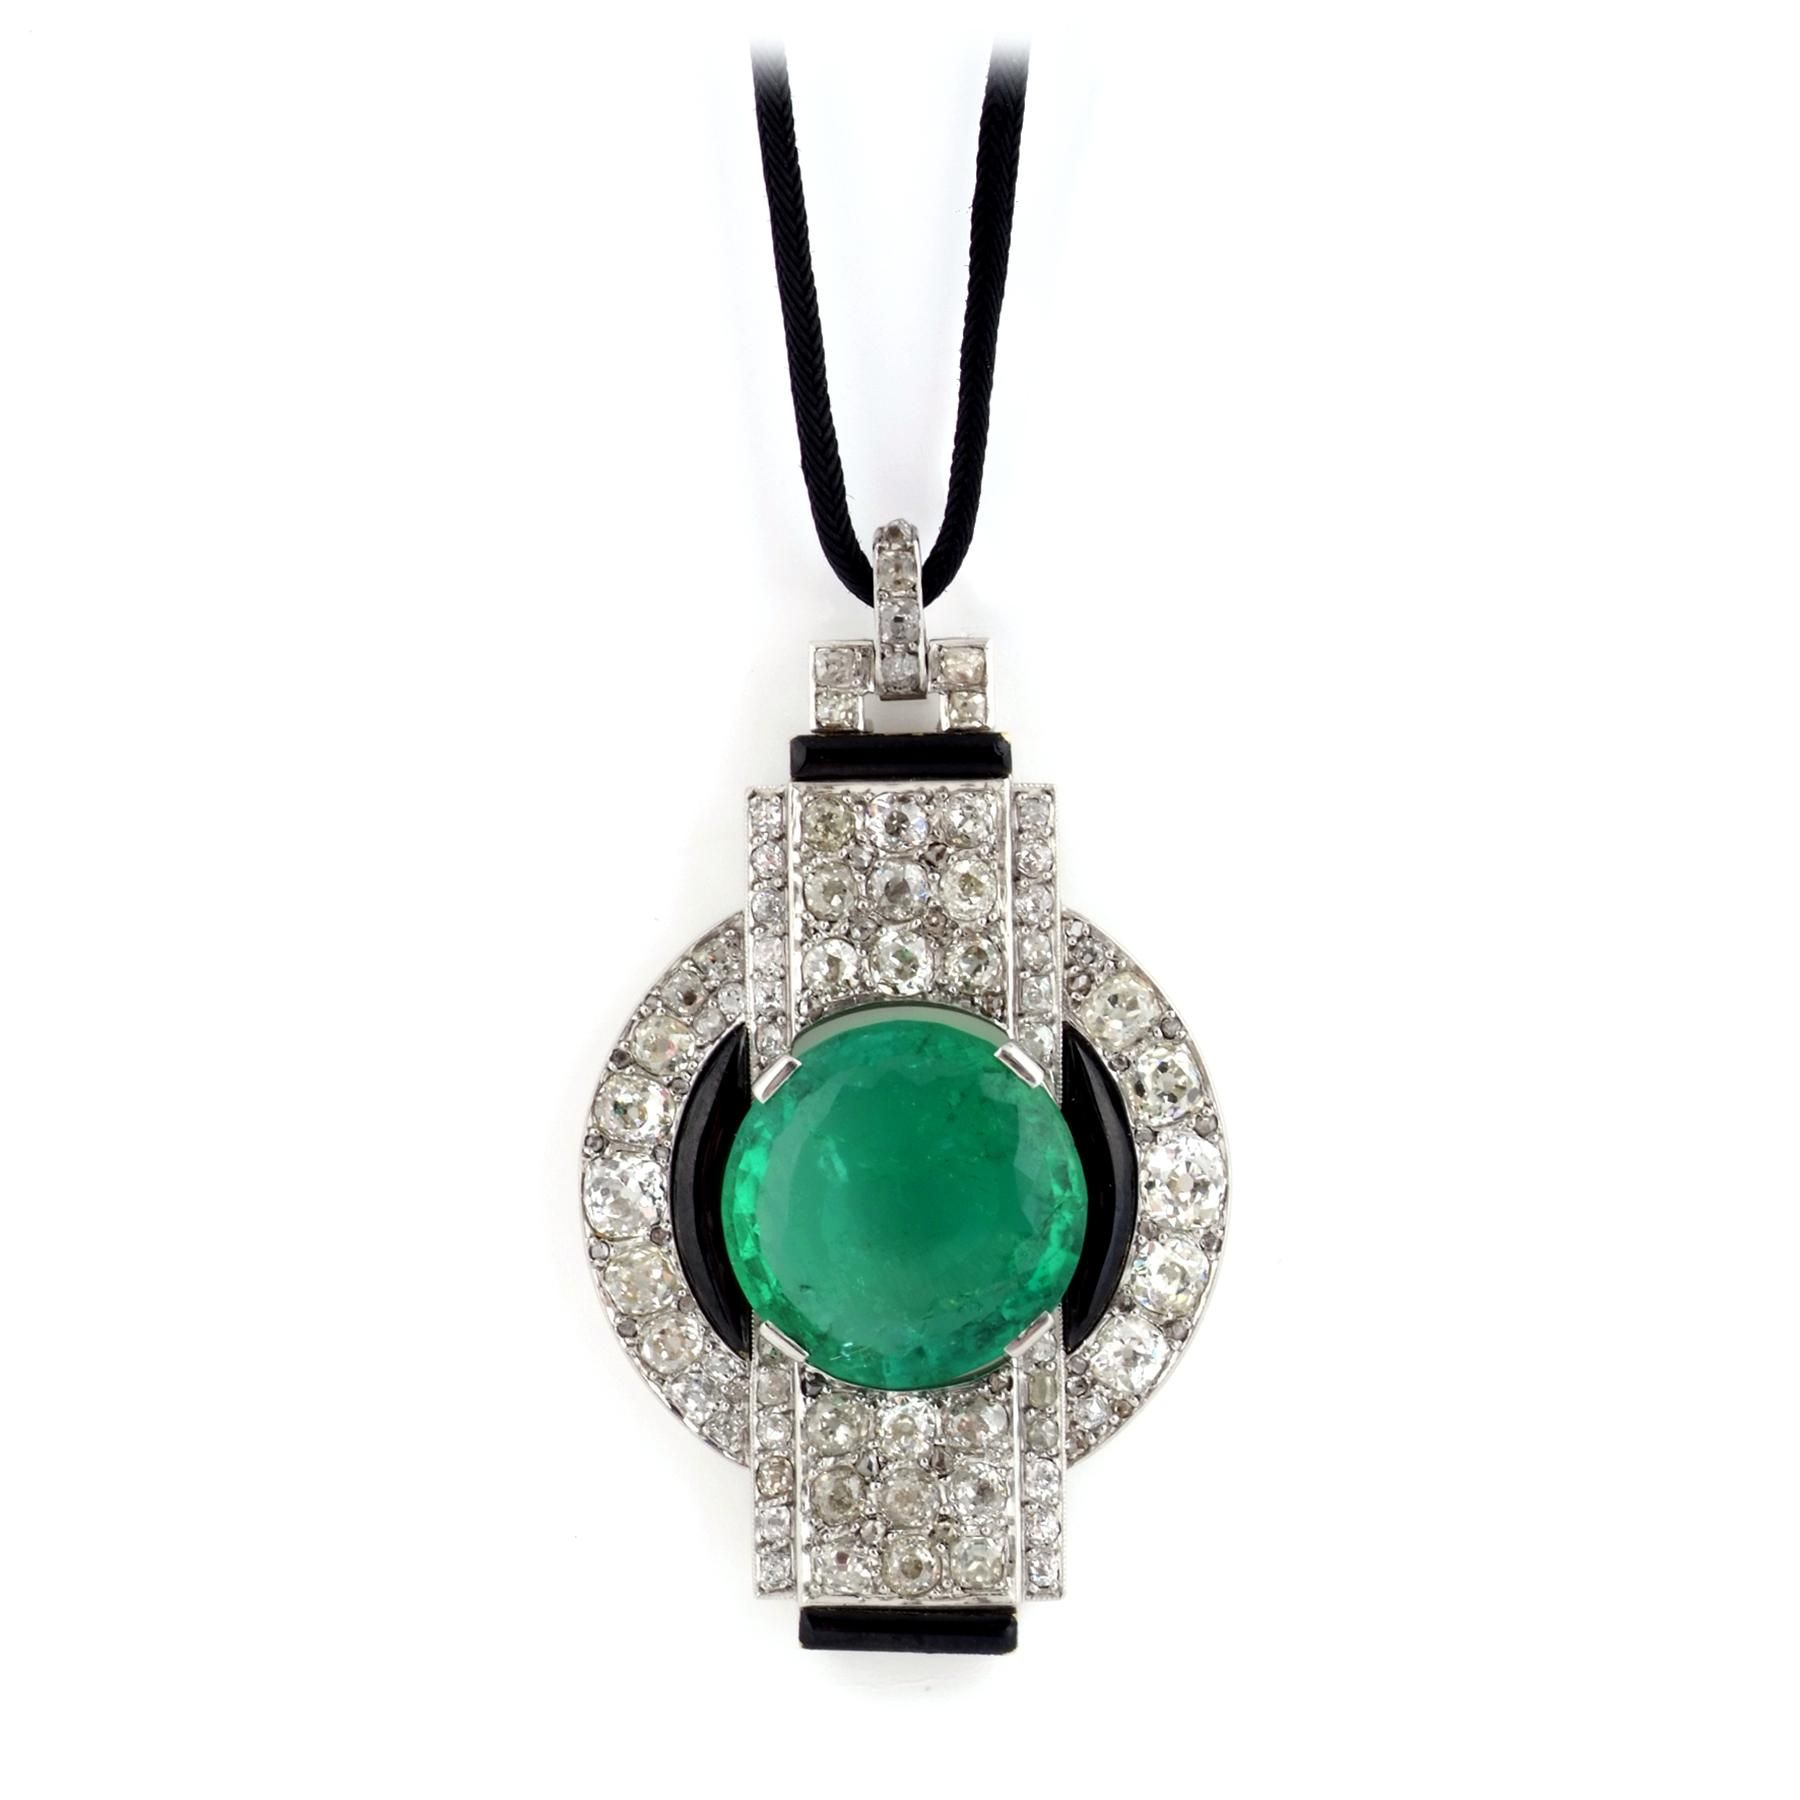 GEORGES FOUQUET. A LACQUER, EMERALD AND DIAMOND BROOCH/PENDANT. Of Modernist design, centring on a circular-cut emerald weighing 13.64 carats, within an annular surround of circular-cut diamonds accented with black lacquer, cut-through with a similarly-set stepped rectangular section, suspended from its original silk cord, later restored brooch fitting, 1924-1930. Accompanied by a photograph courtesy of the Fouquet Archives conserved by the Musée des Arts décoratifs, Paris.